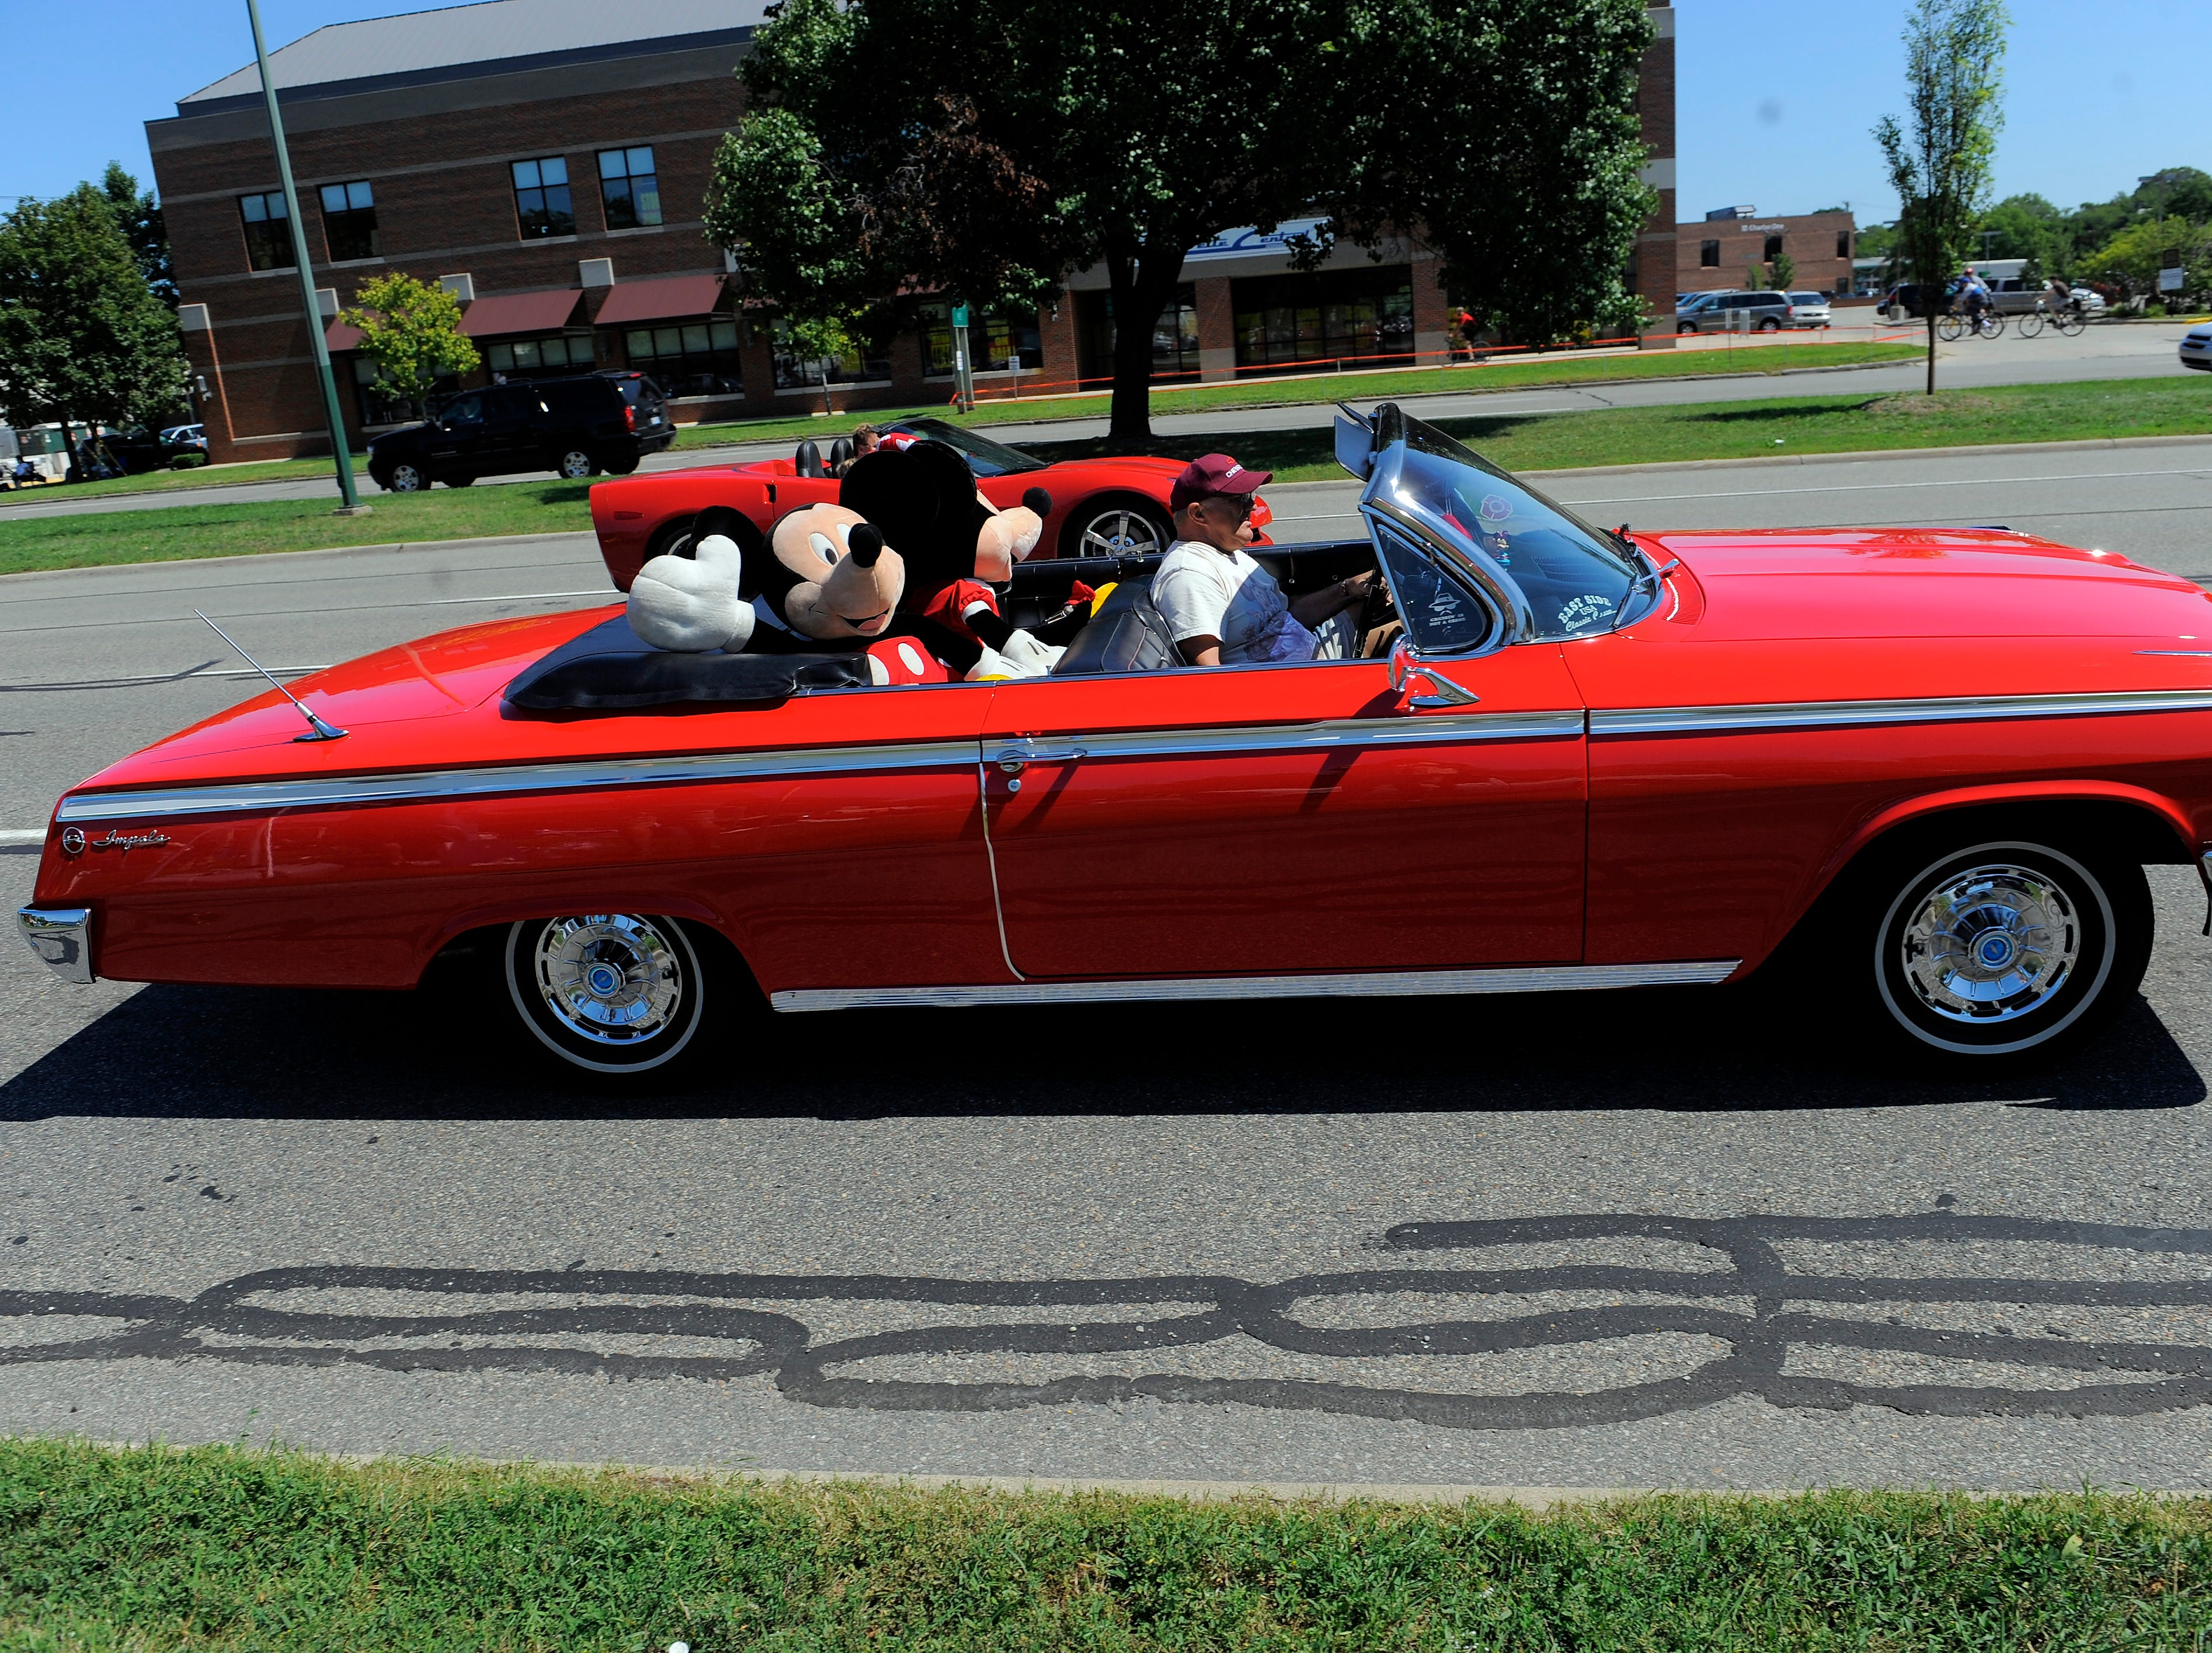 A 1963 Chevrolet Impala convertible filled with stuffed animals heads south on Woodward, Friday  Aug. 19, 2011.